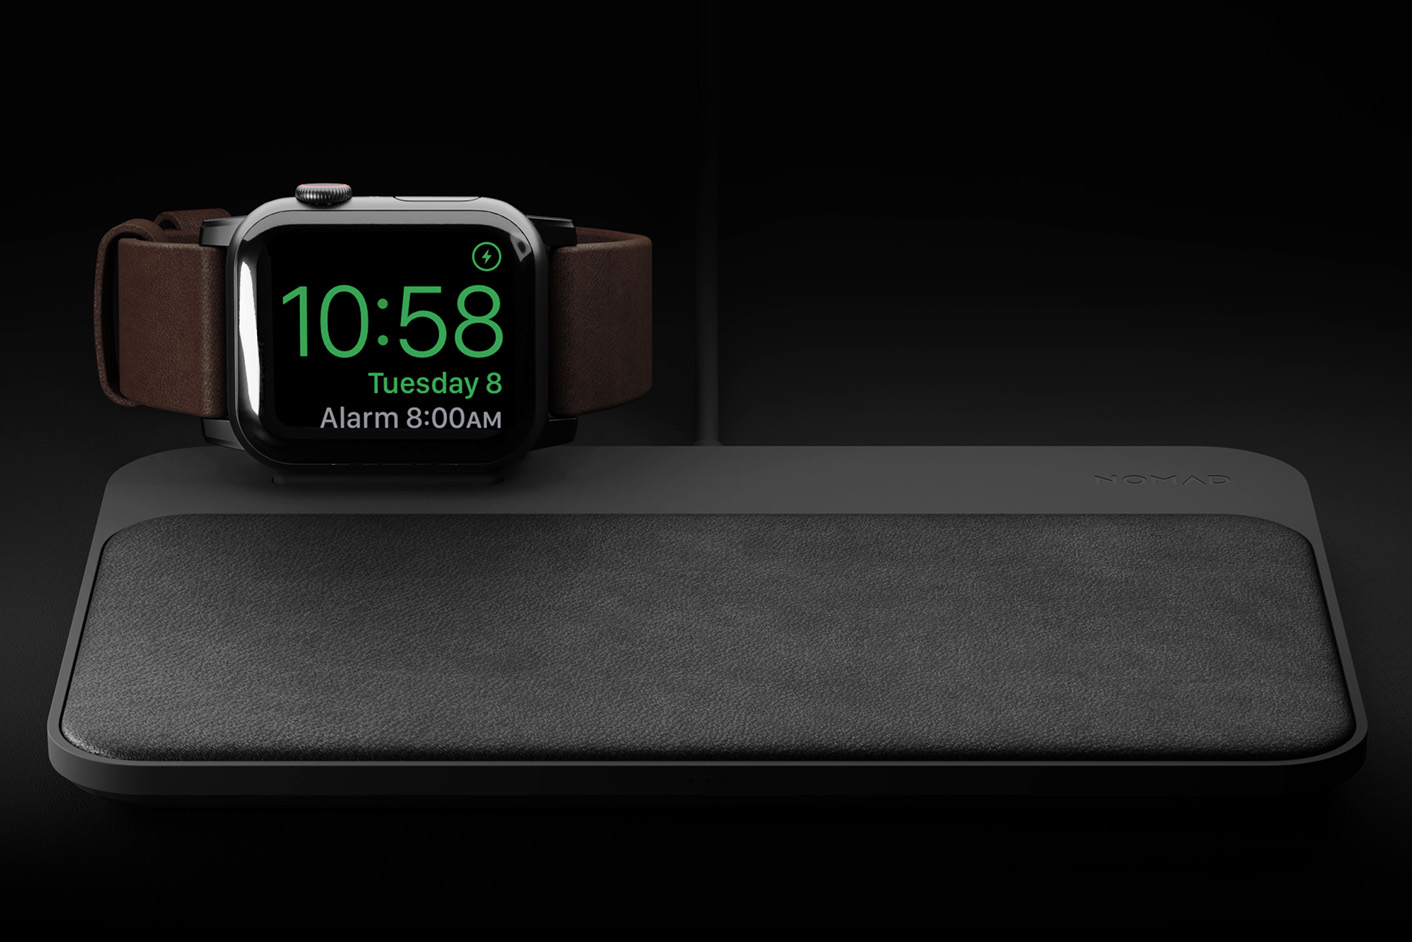 Nomad's Base Station Apple Watch Edition is the AirPower Apple won't release